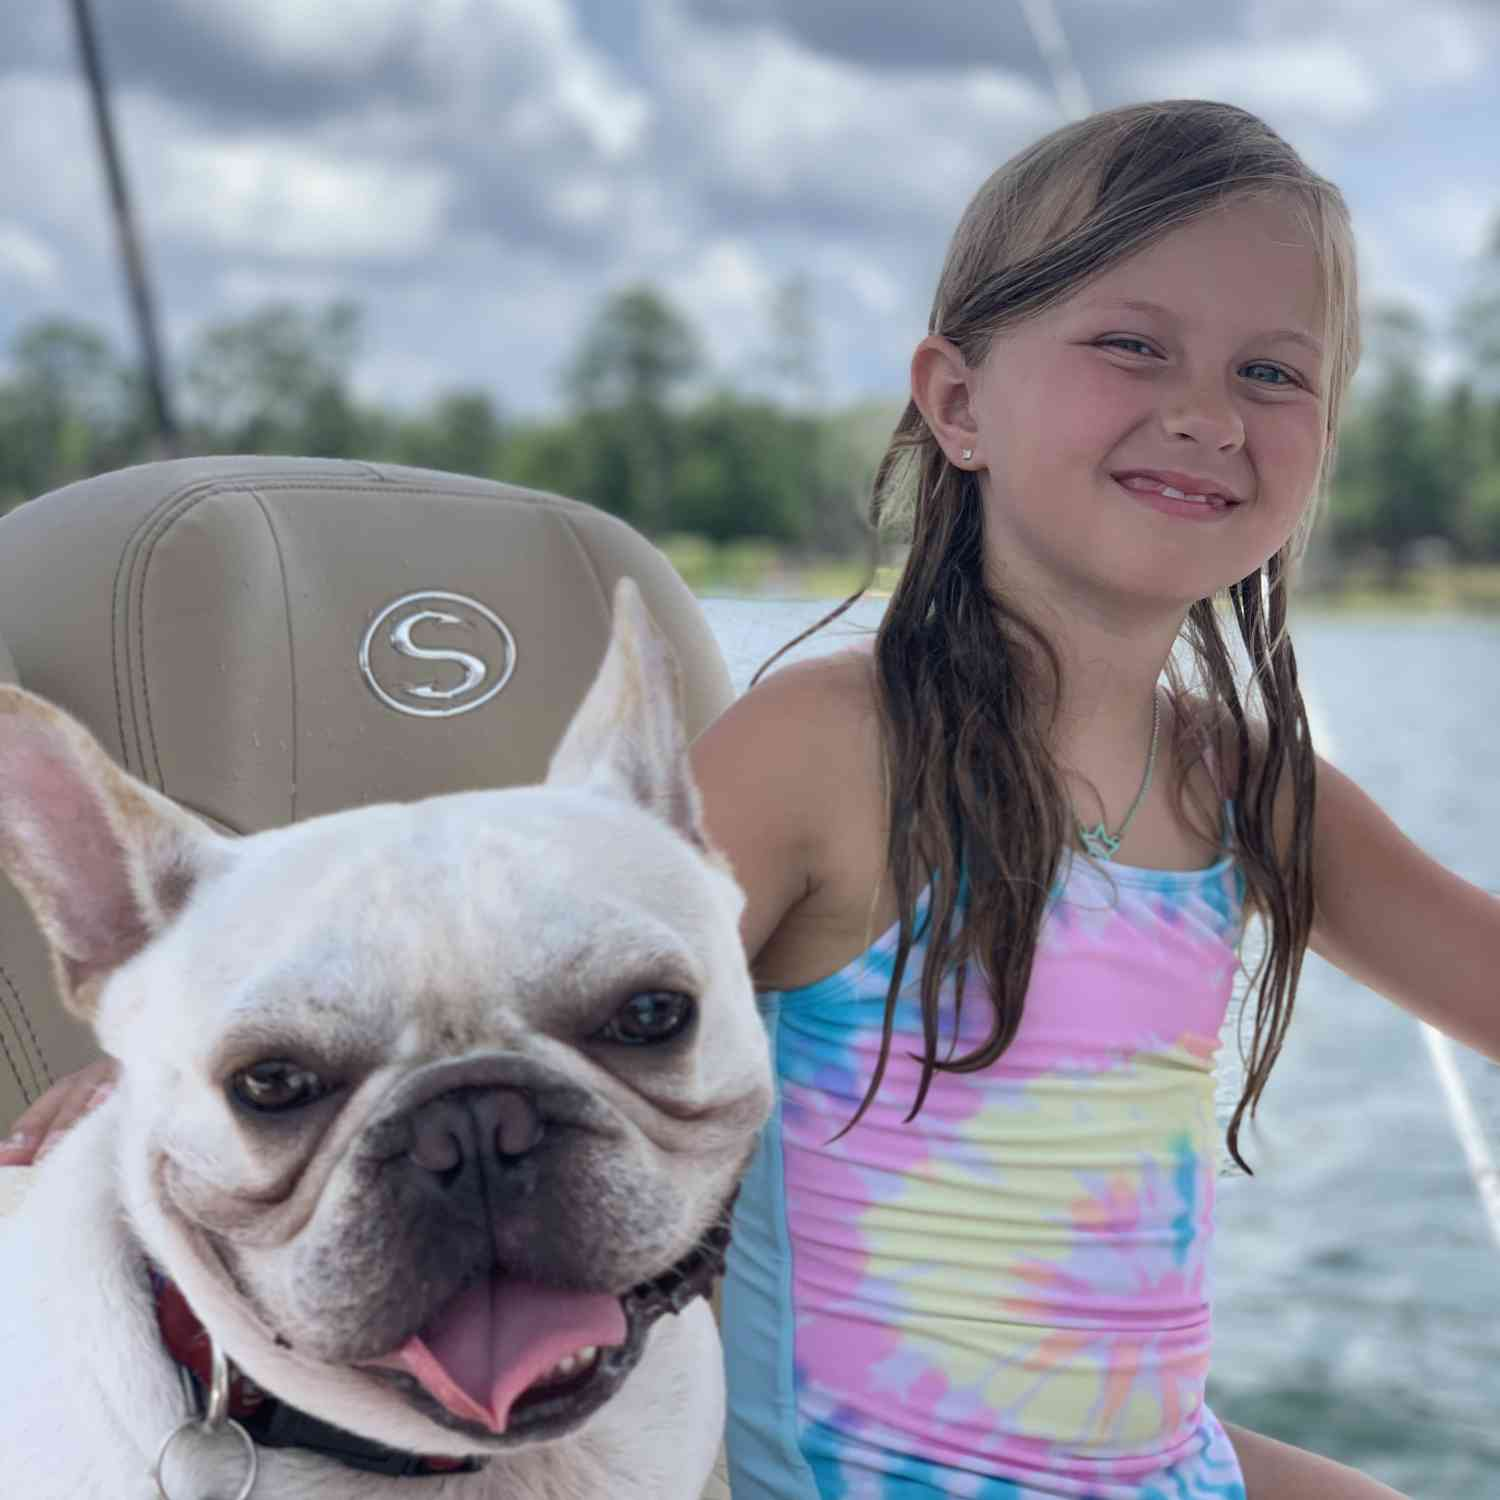 Title: Family - On board their Sportsman Masters 247 Bay Boat - Location: Camp blanding. Participating in the Photo Contest #SportsmanJuly2020